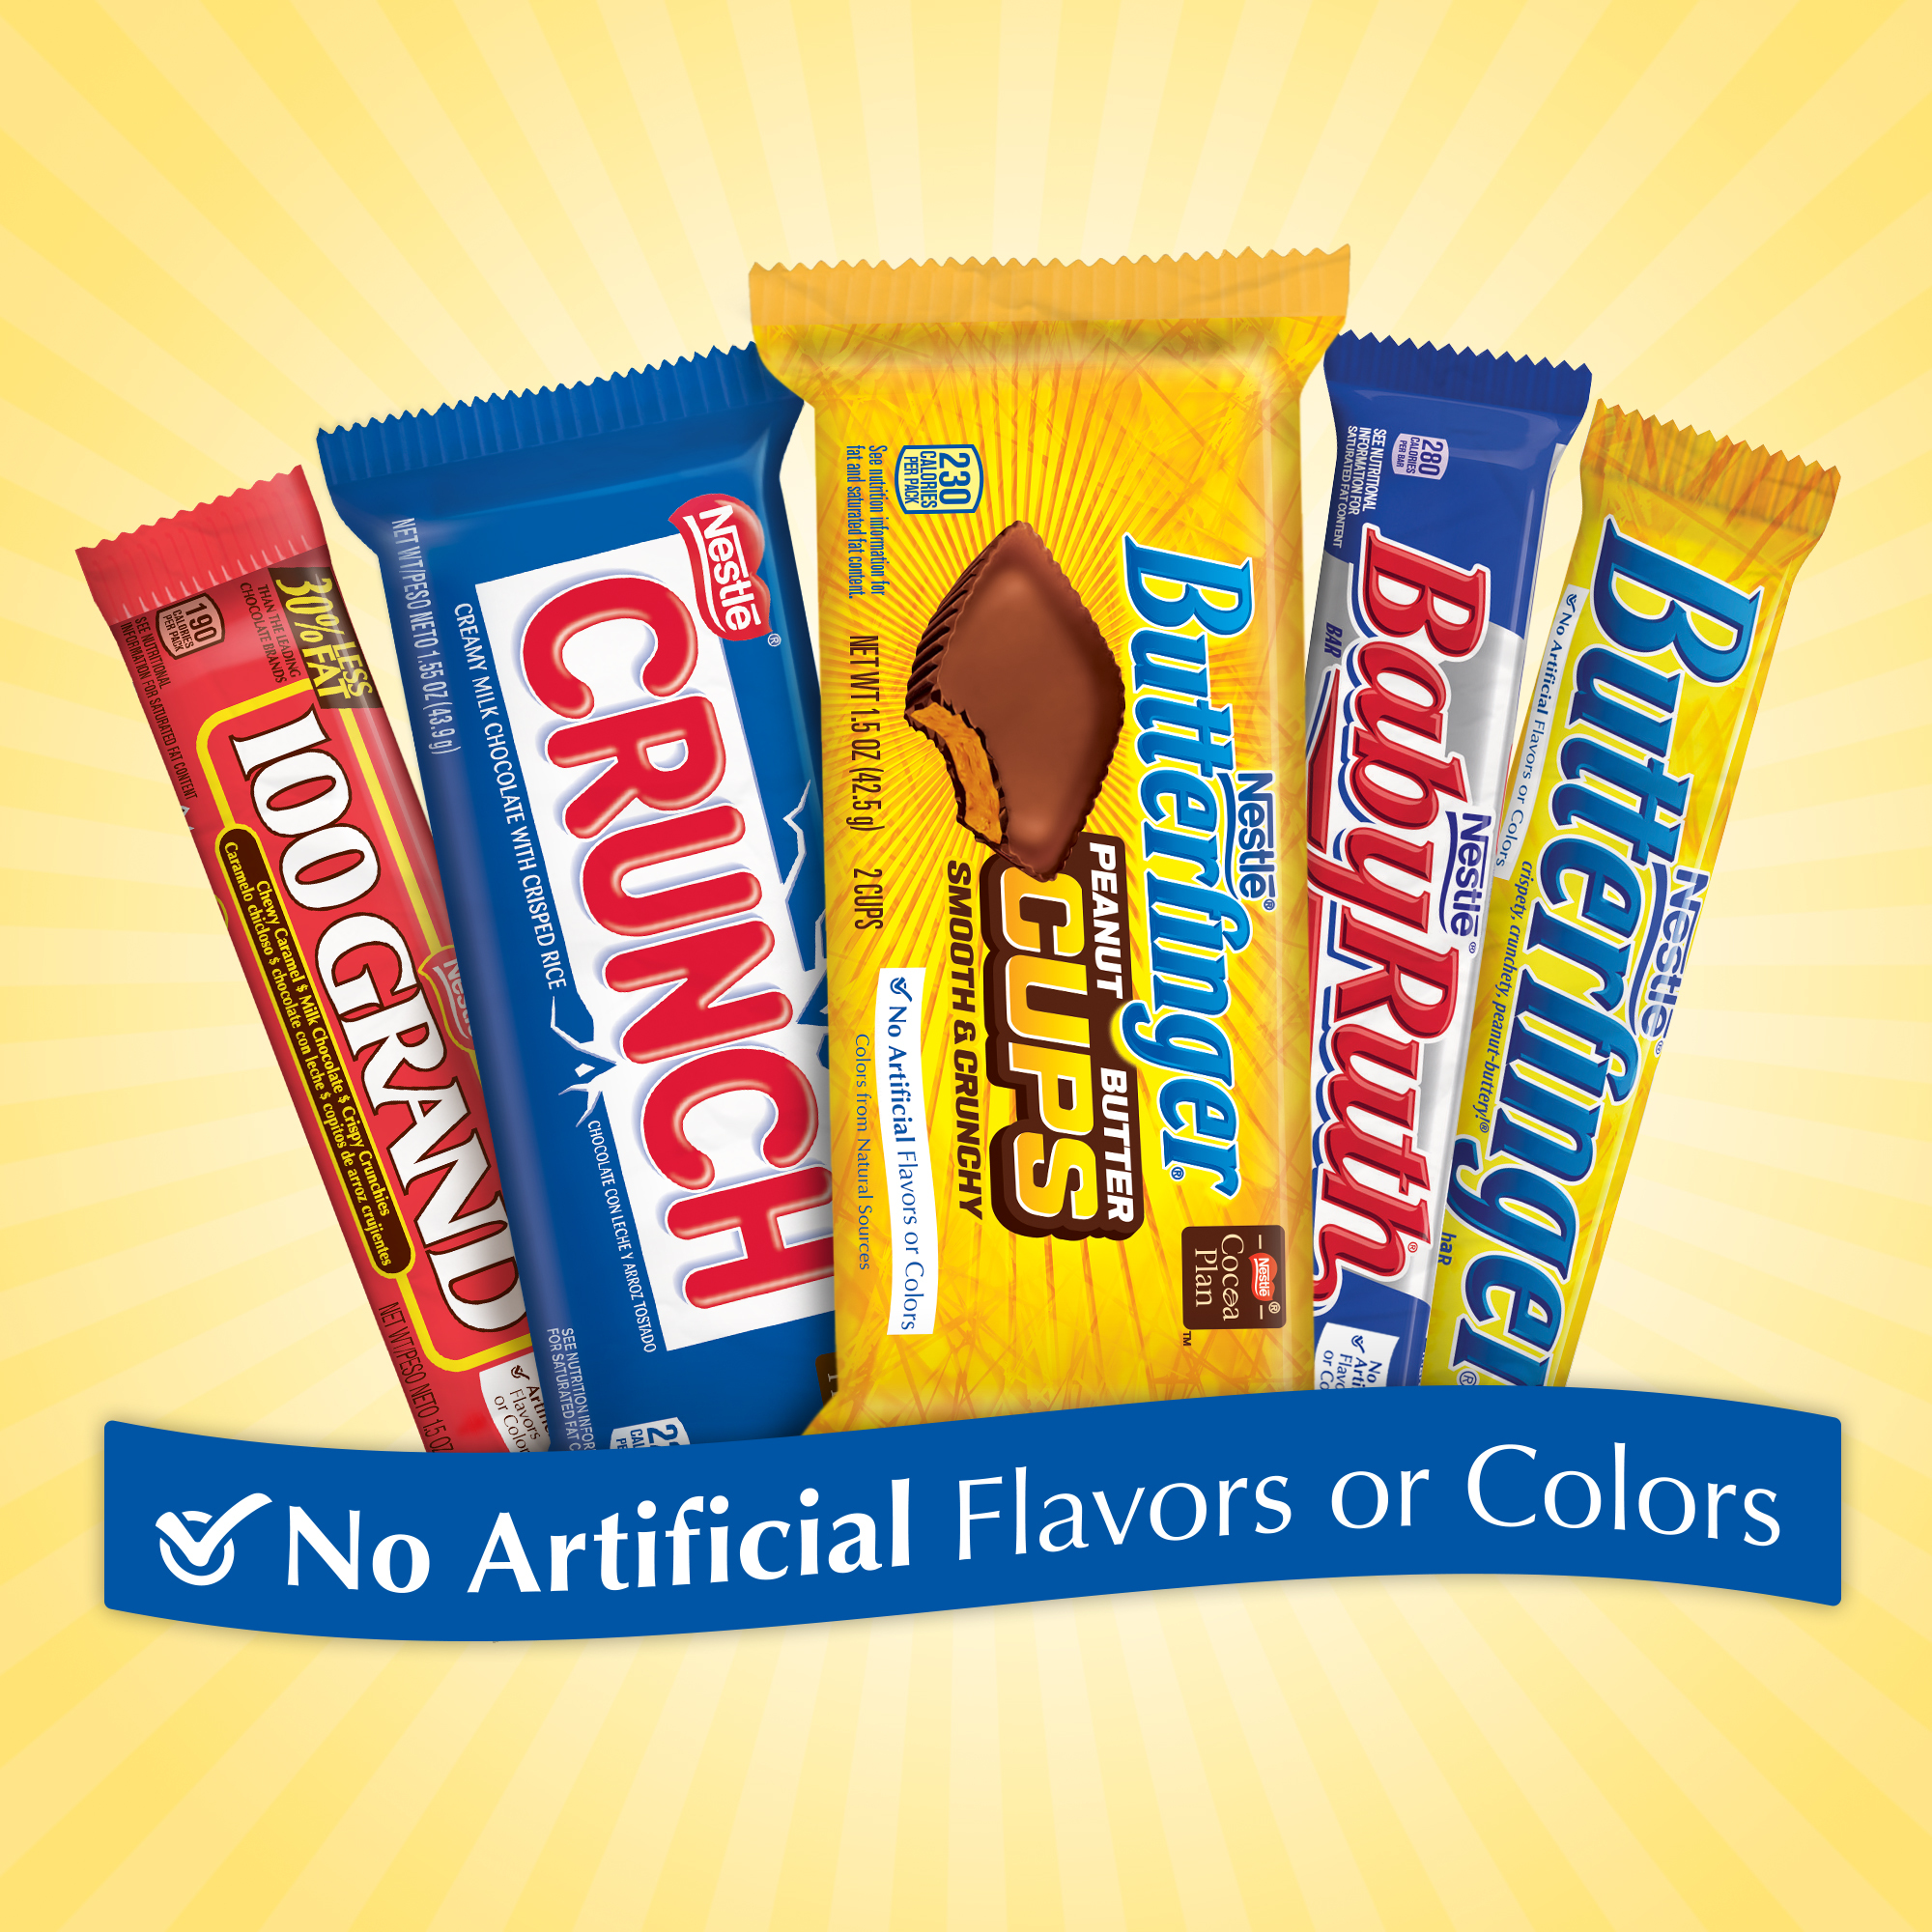 Nestlé USA Commits to Removing Artificial Flavors and FDA ...